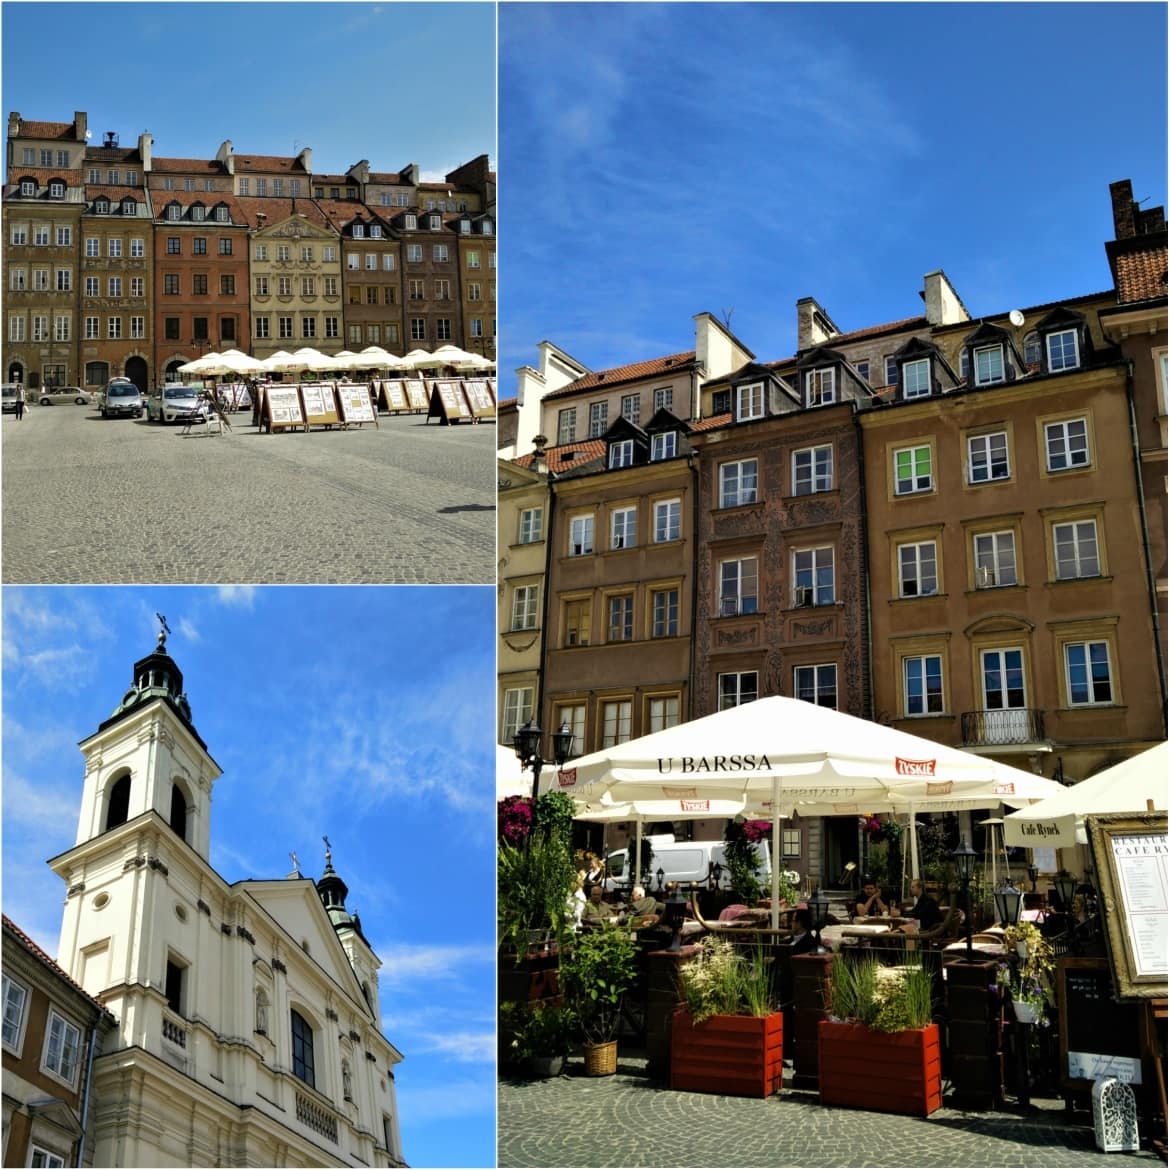 Beautiful architecture in Warsaw's old town